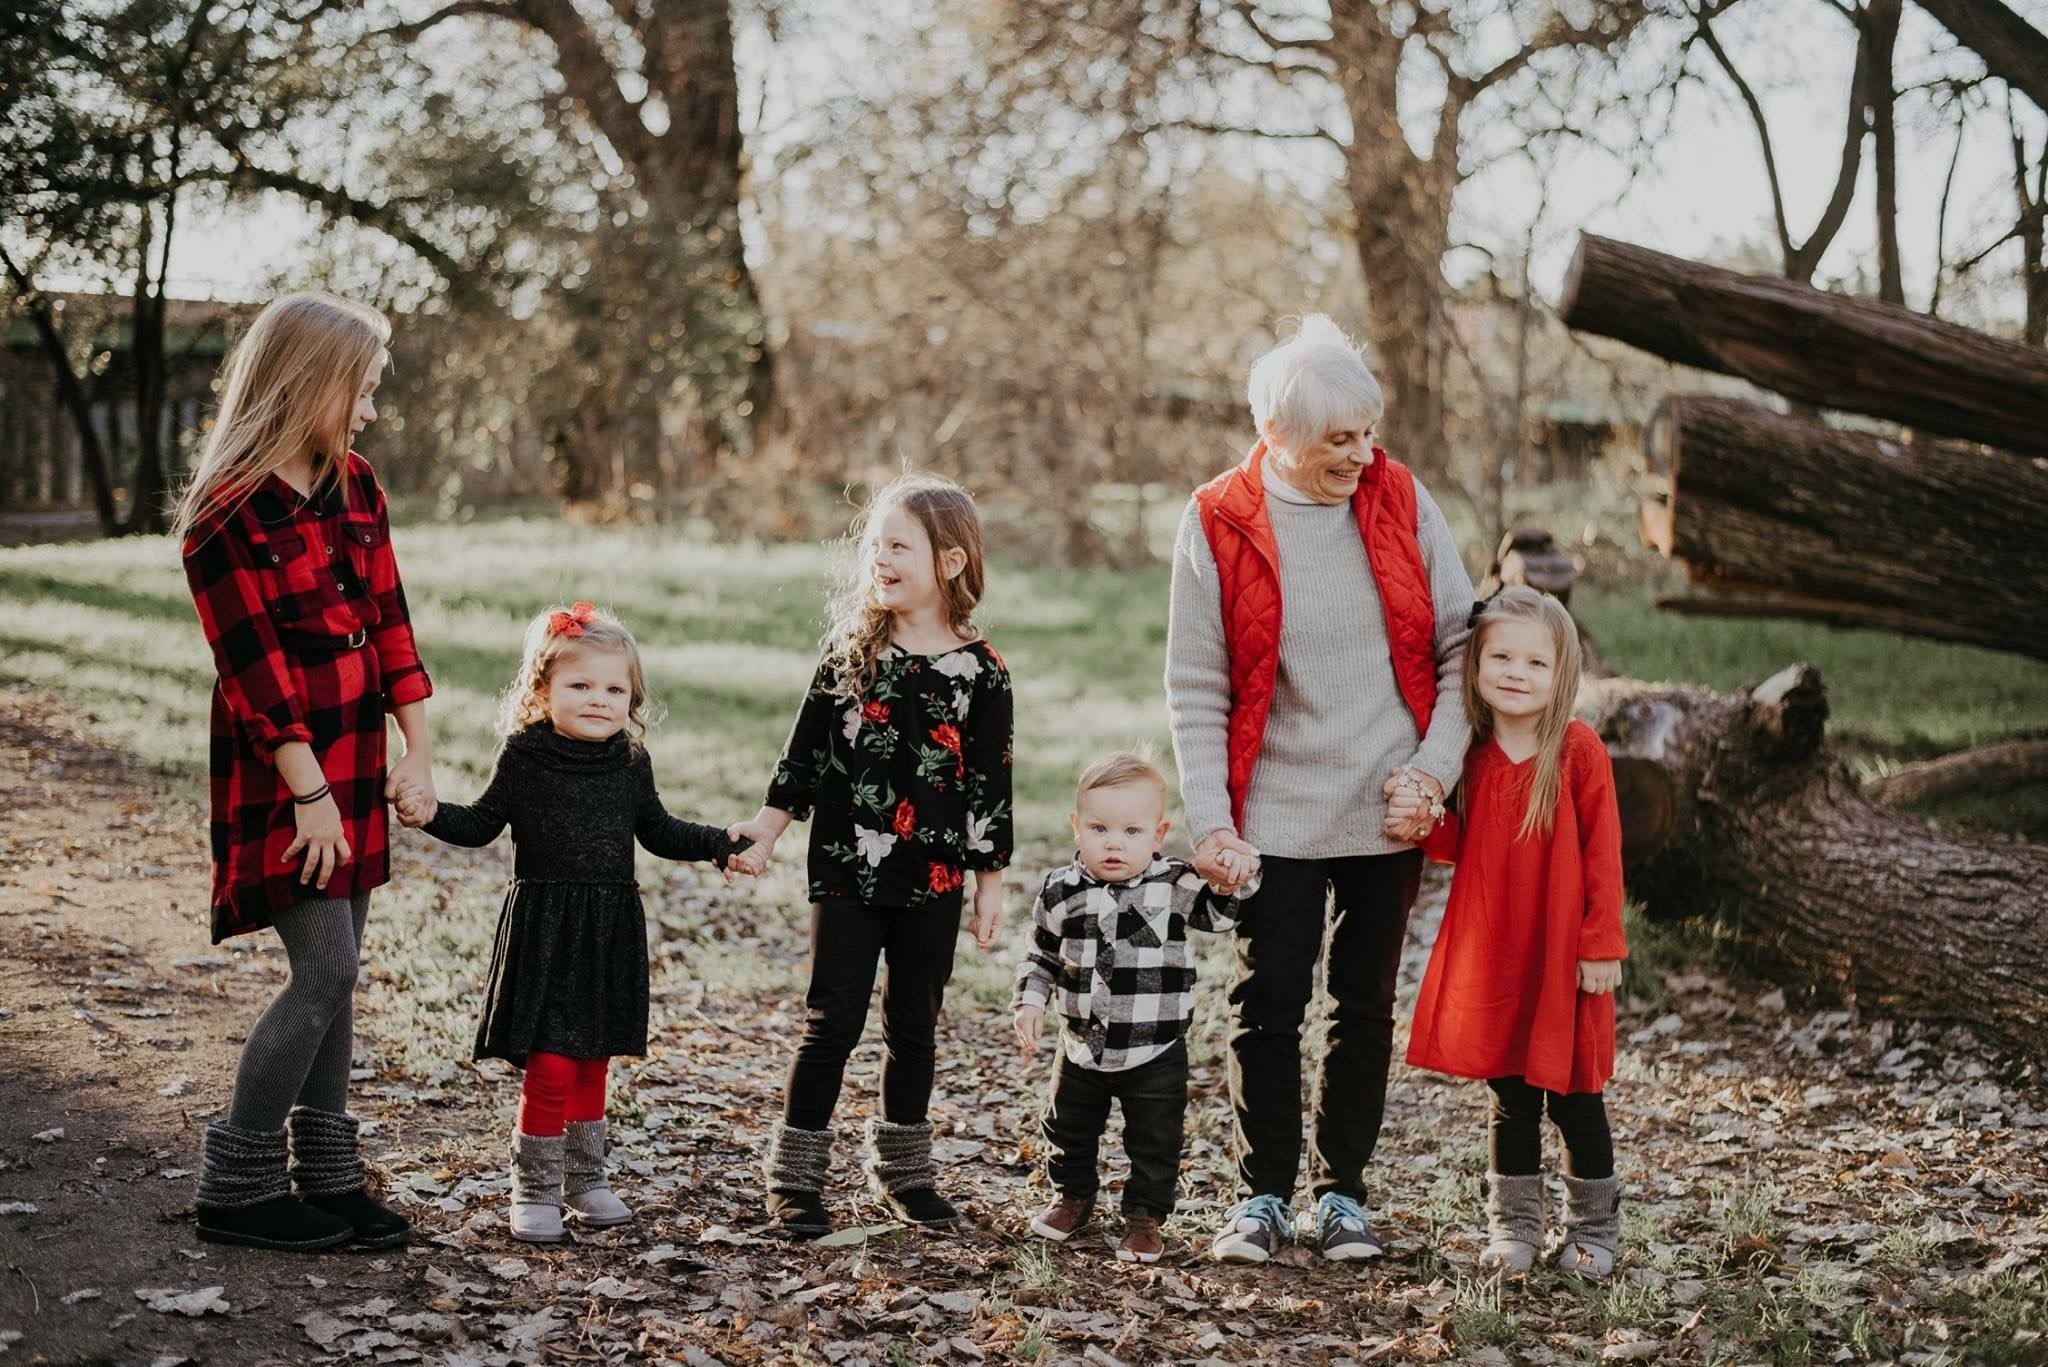 Family Picture red and black outfits grandma and grandkids outdoor #grandkidsphotography Family Picture red and black outfits grandma and grandkids outdoor #grandkidsphotography